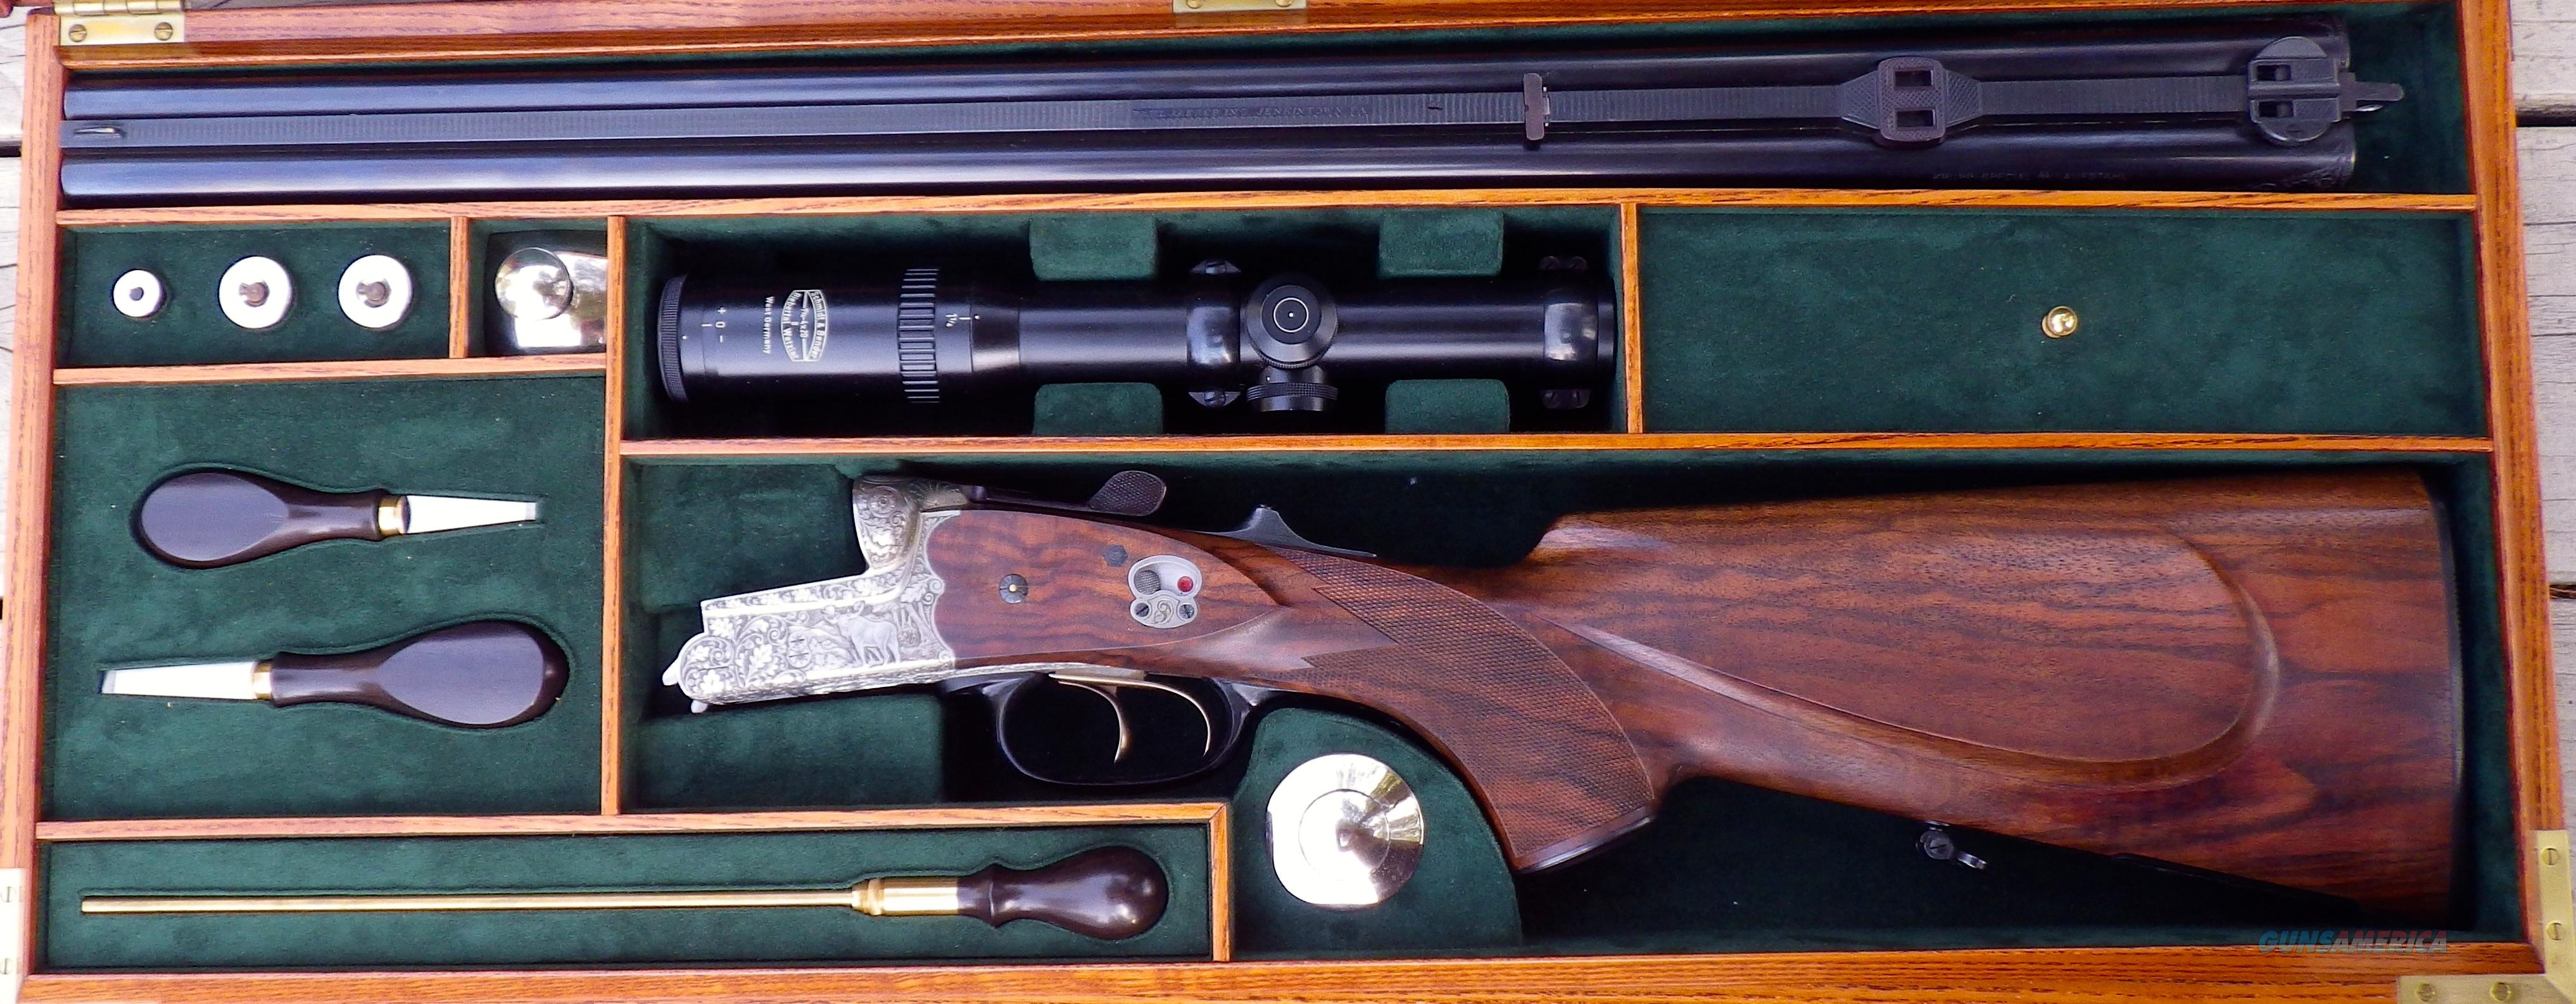 Heym Model 33 Deluxe drilling 16/16/9.3x74R, full engraving, Huey case, pristine  Guns > Rifles > Custom Rifles > Other